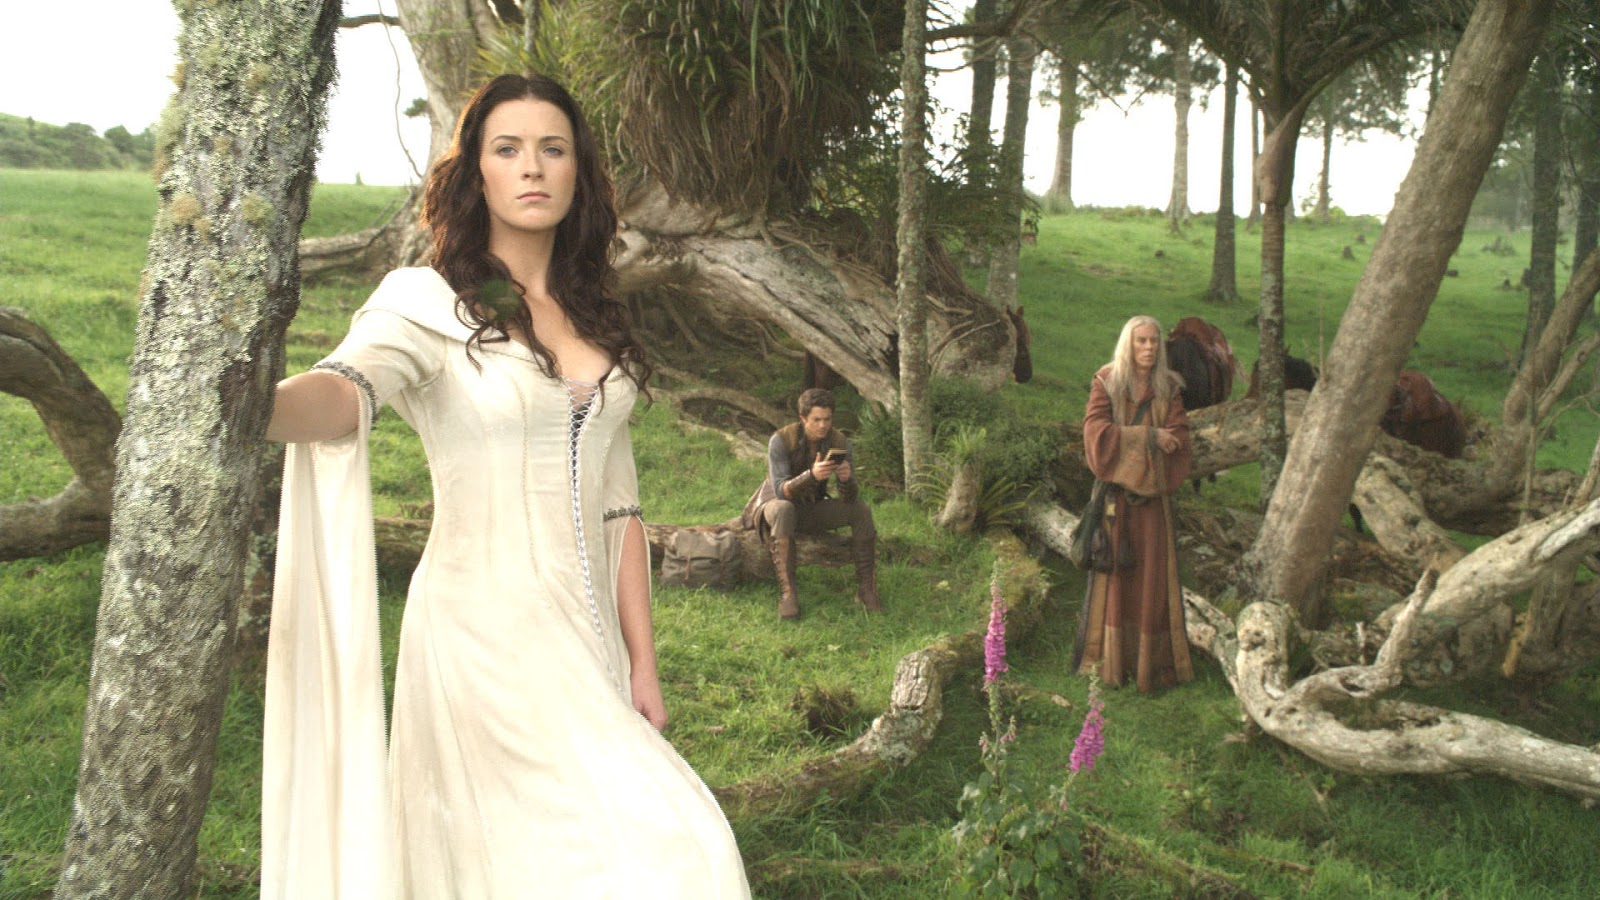 Legend of the seeker kahlan amnell outfit skyrim mod requests the